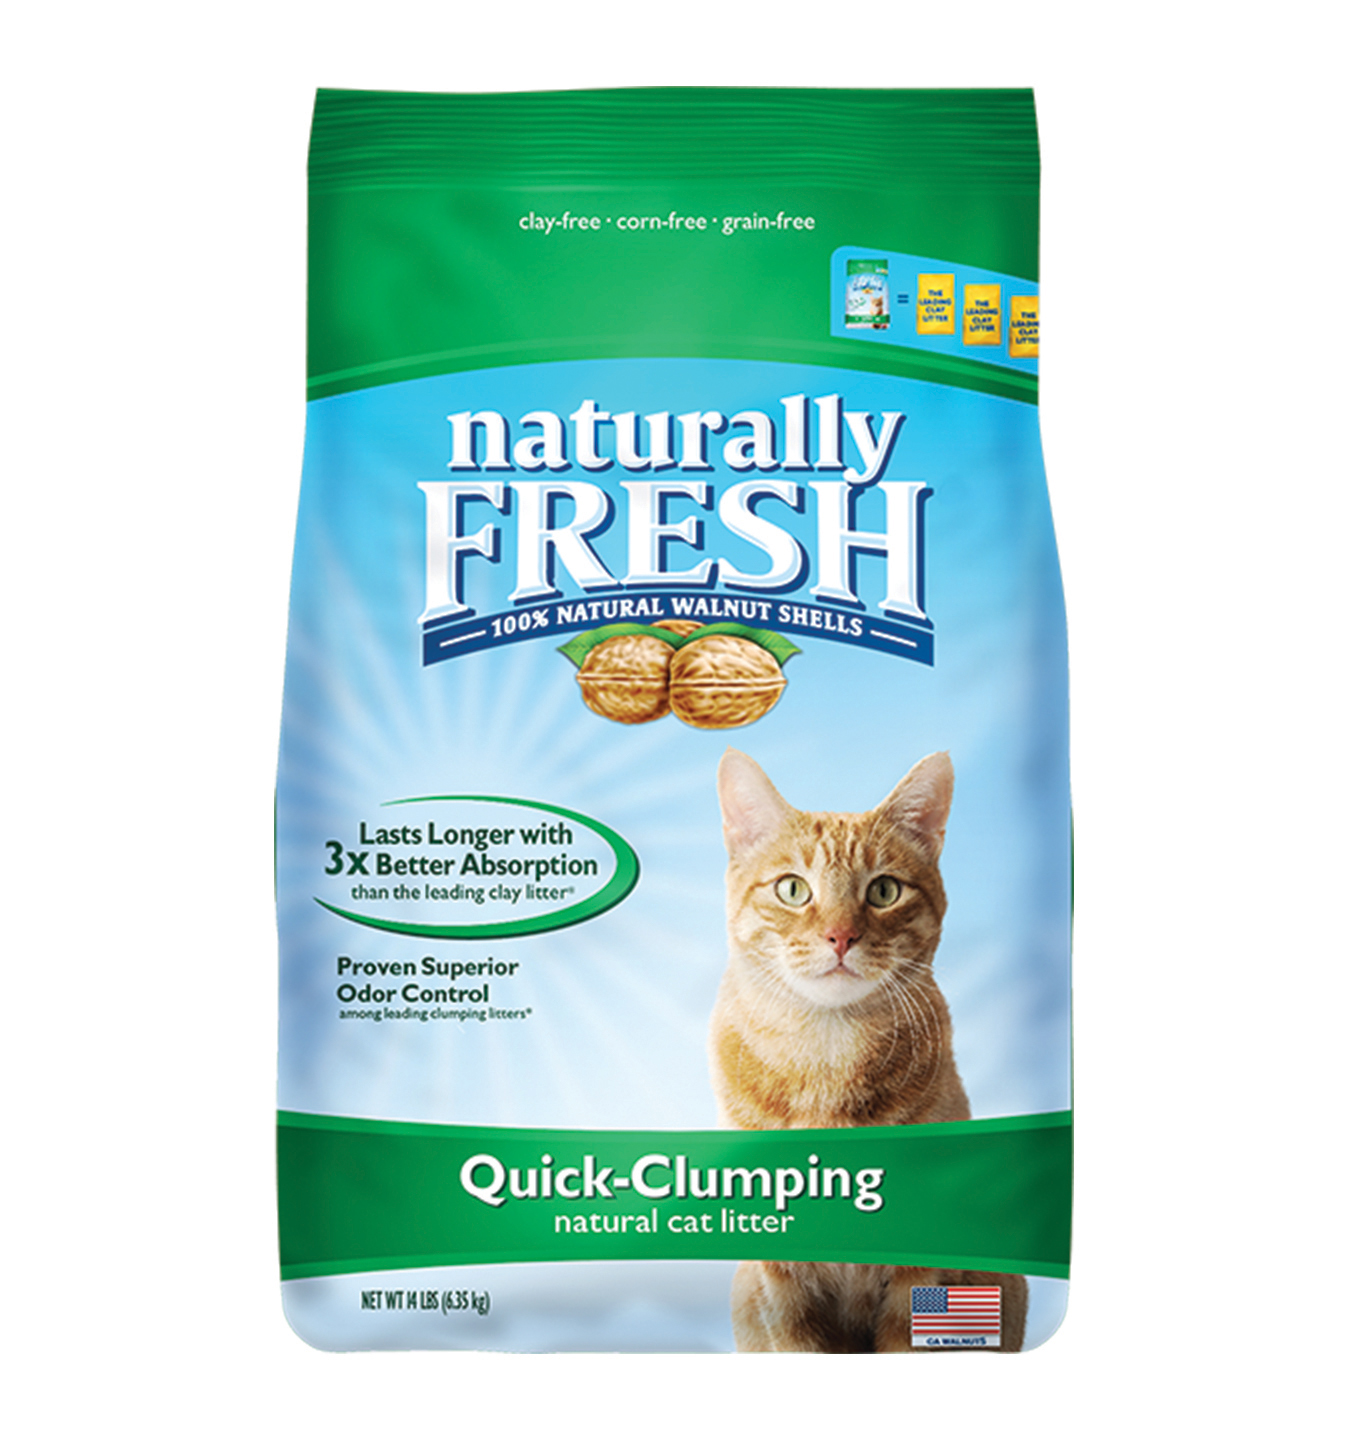 Naturally Fresh Walnut-Based Quick-Clumping Cat Litter, 6-lb bag